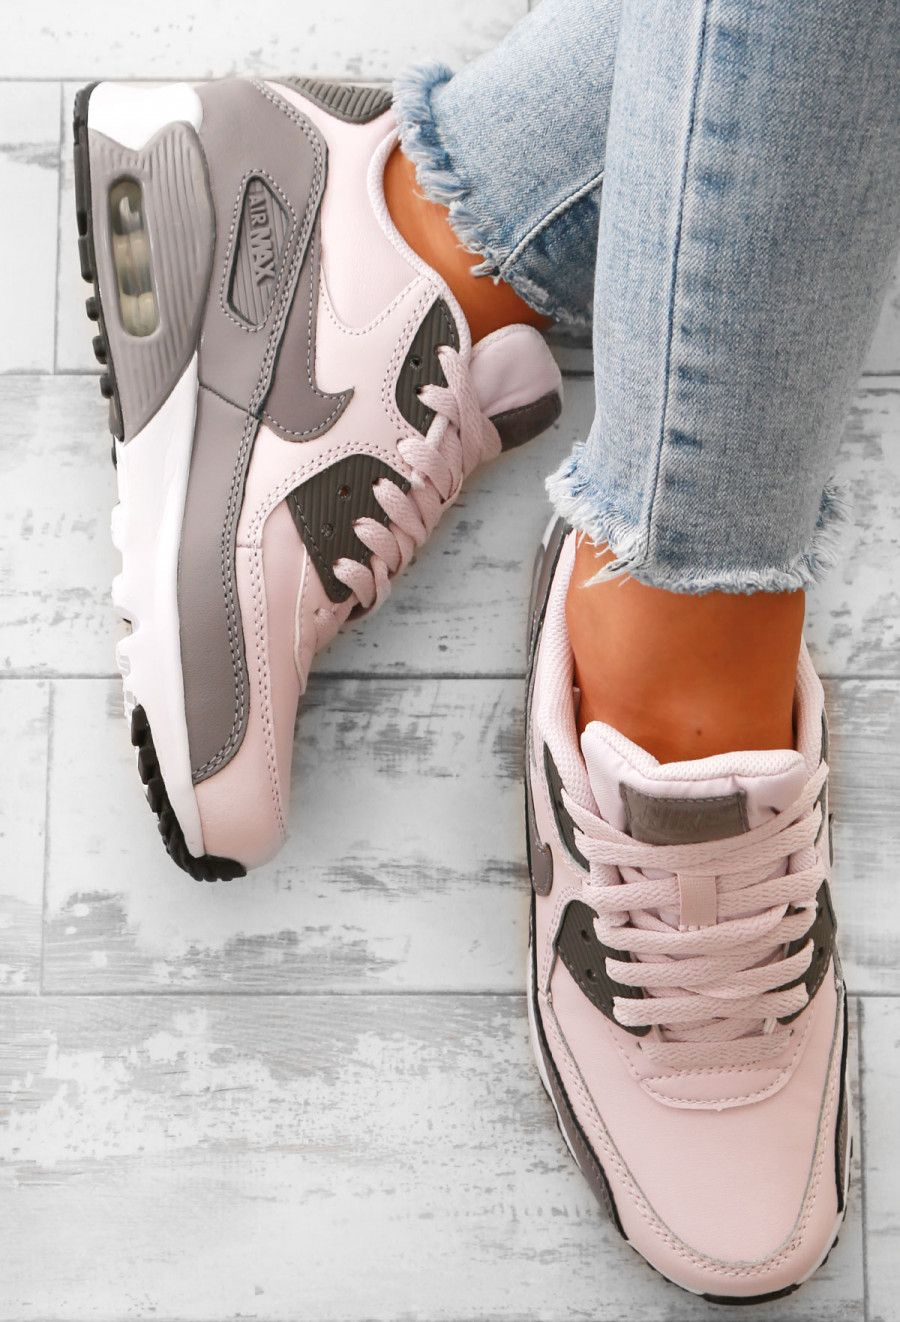 designer fashion f410f 6035a Nike Air Max 90 Grey and Rose Trainers   Pink Boutique